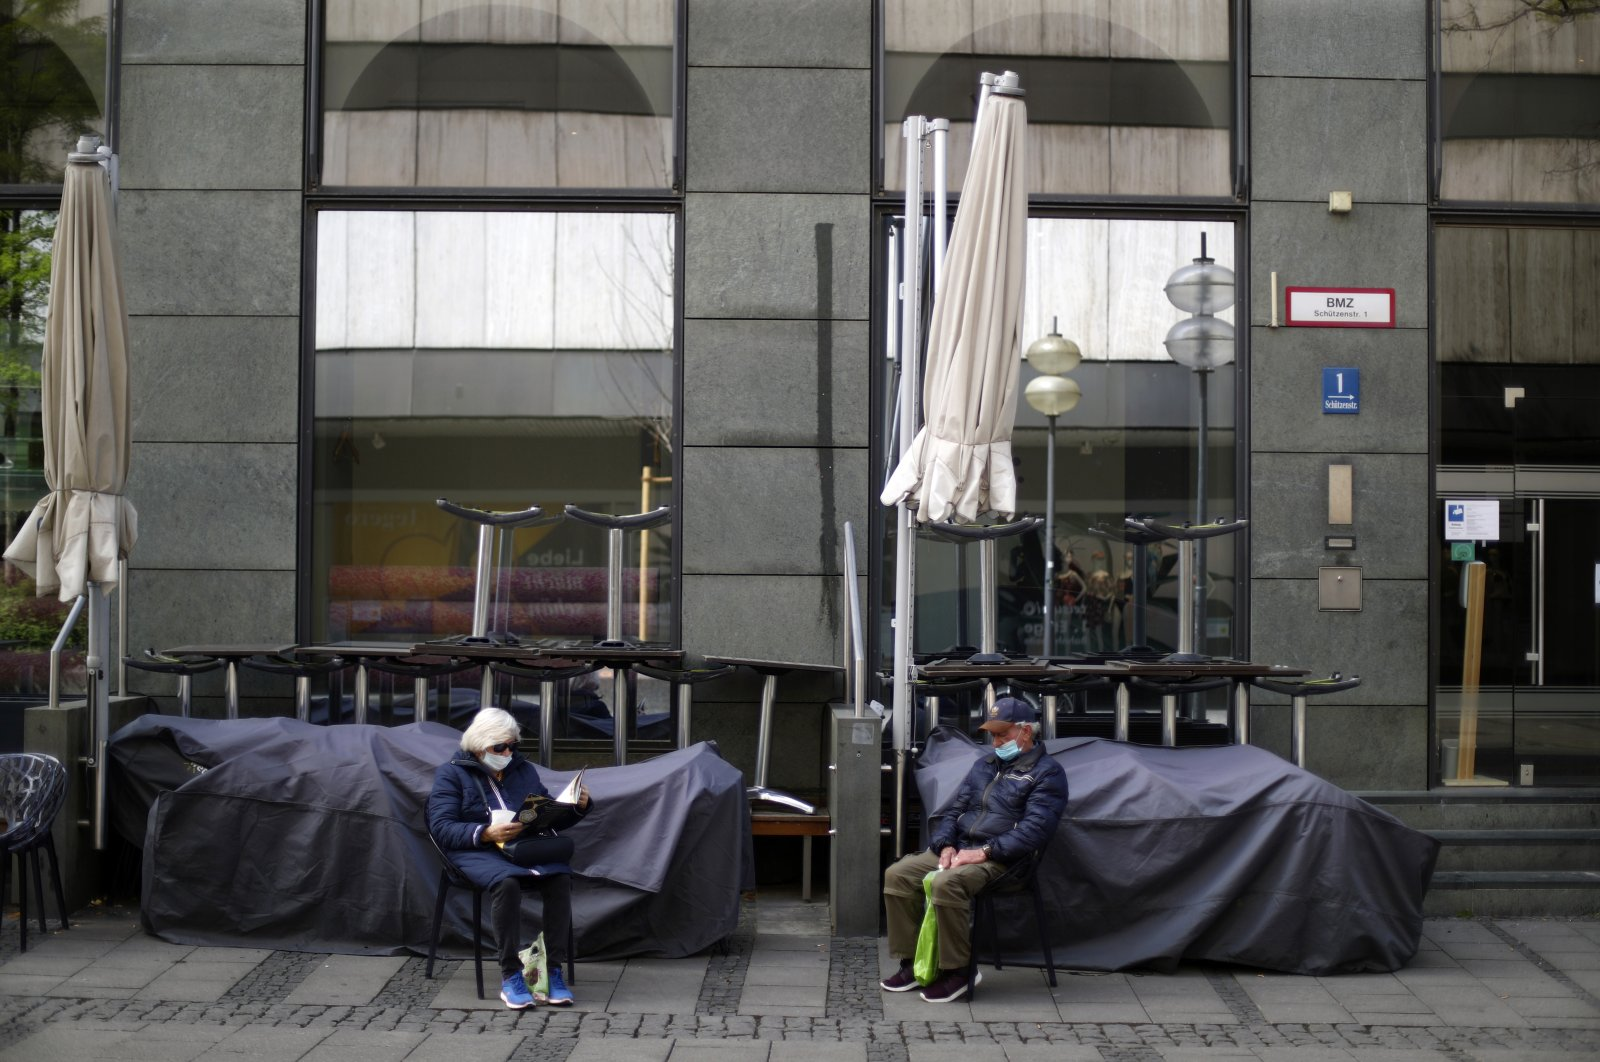 An elderly couple sits outside a closed bar during the lockdown due to the coronavirus outbreak downtown in Munich, Germany, May 9, 2020. (AP Photo)